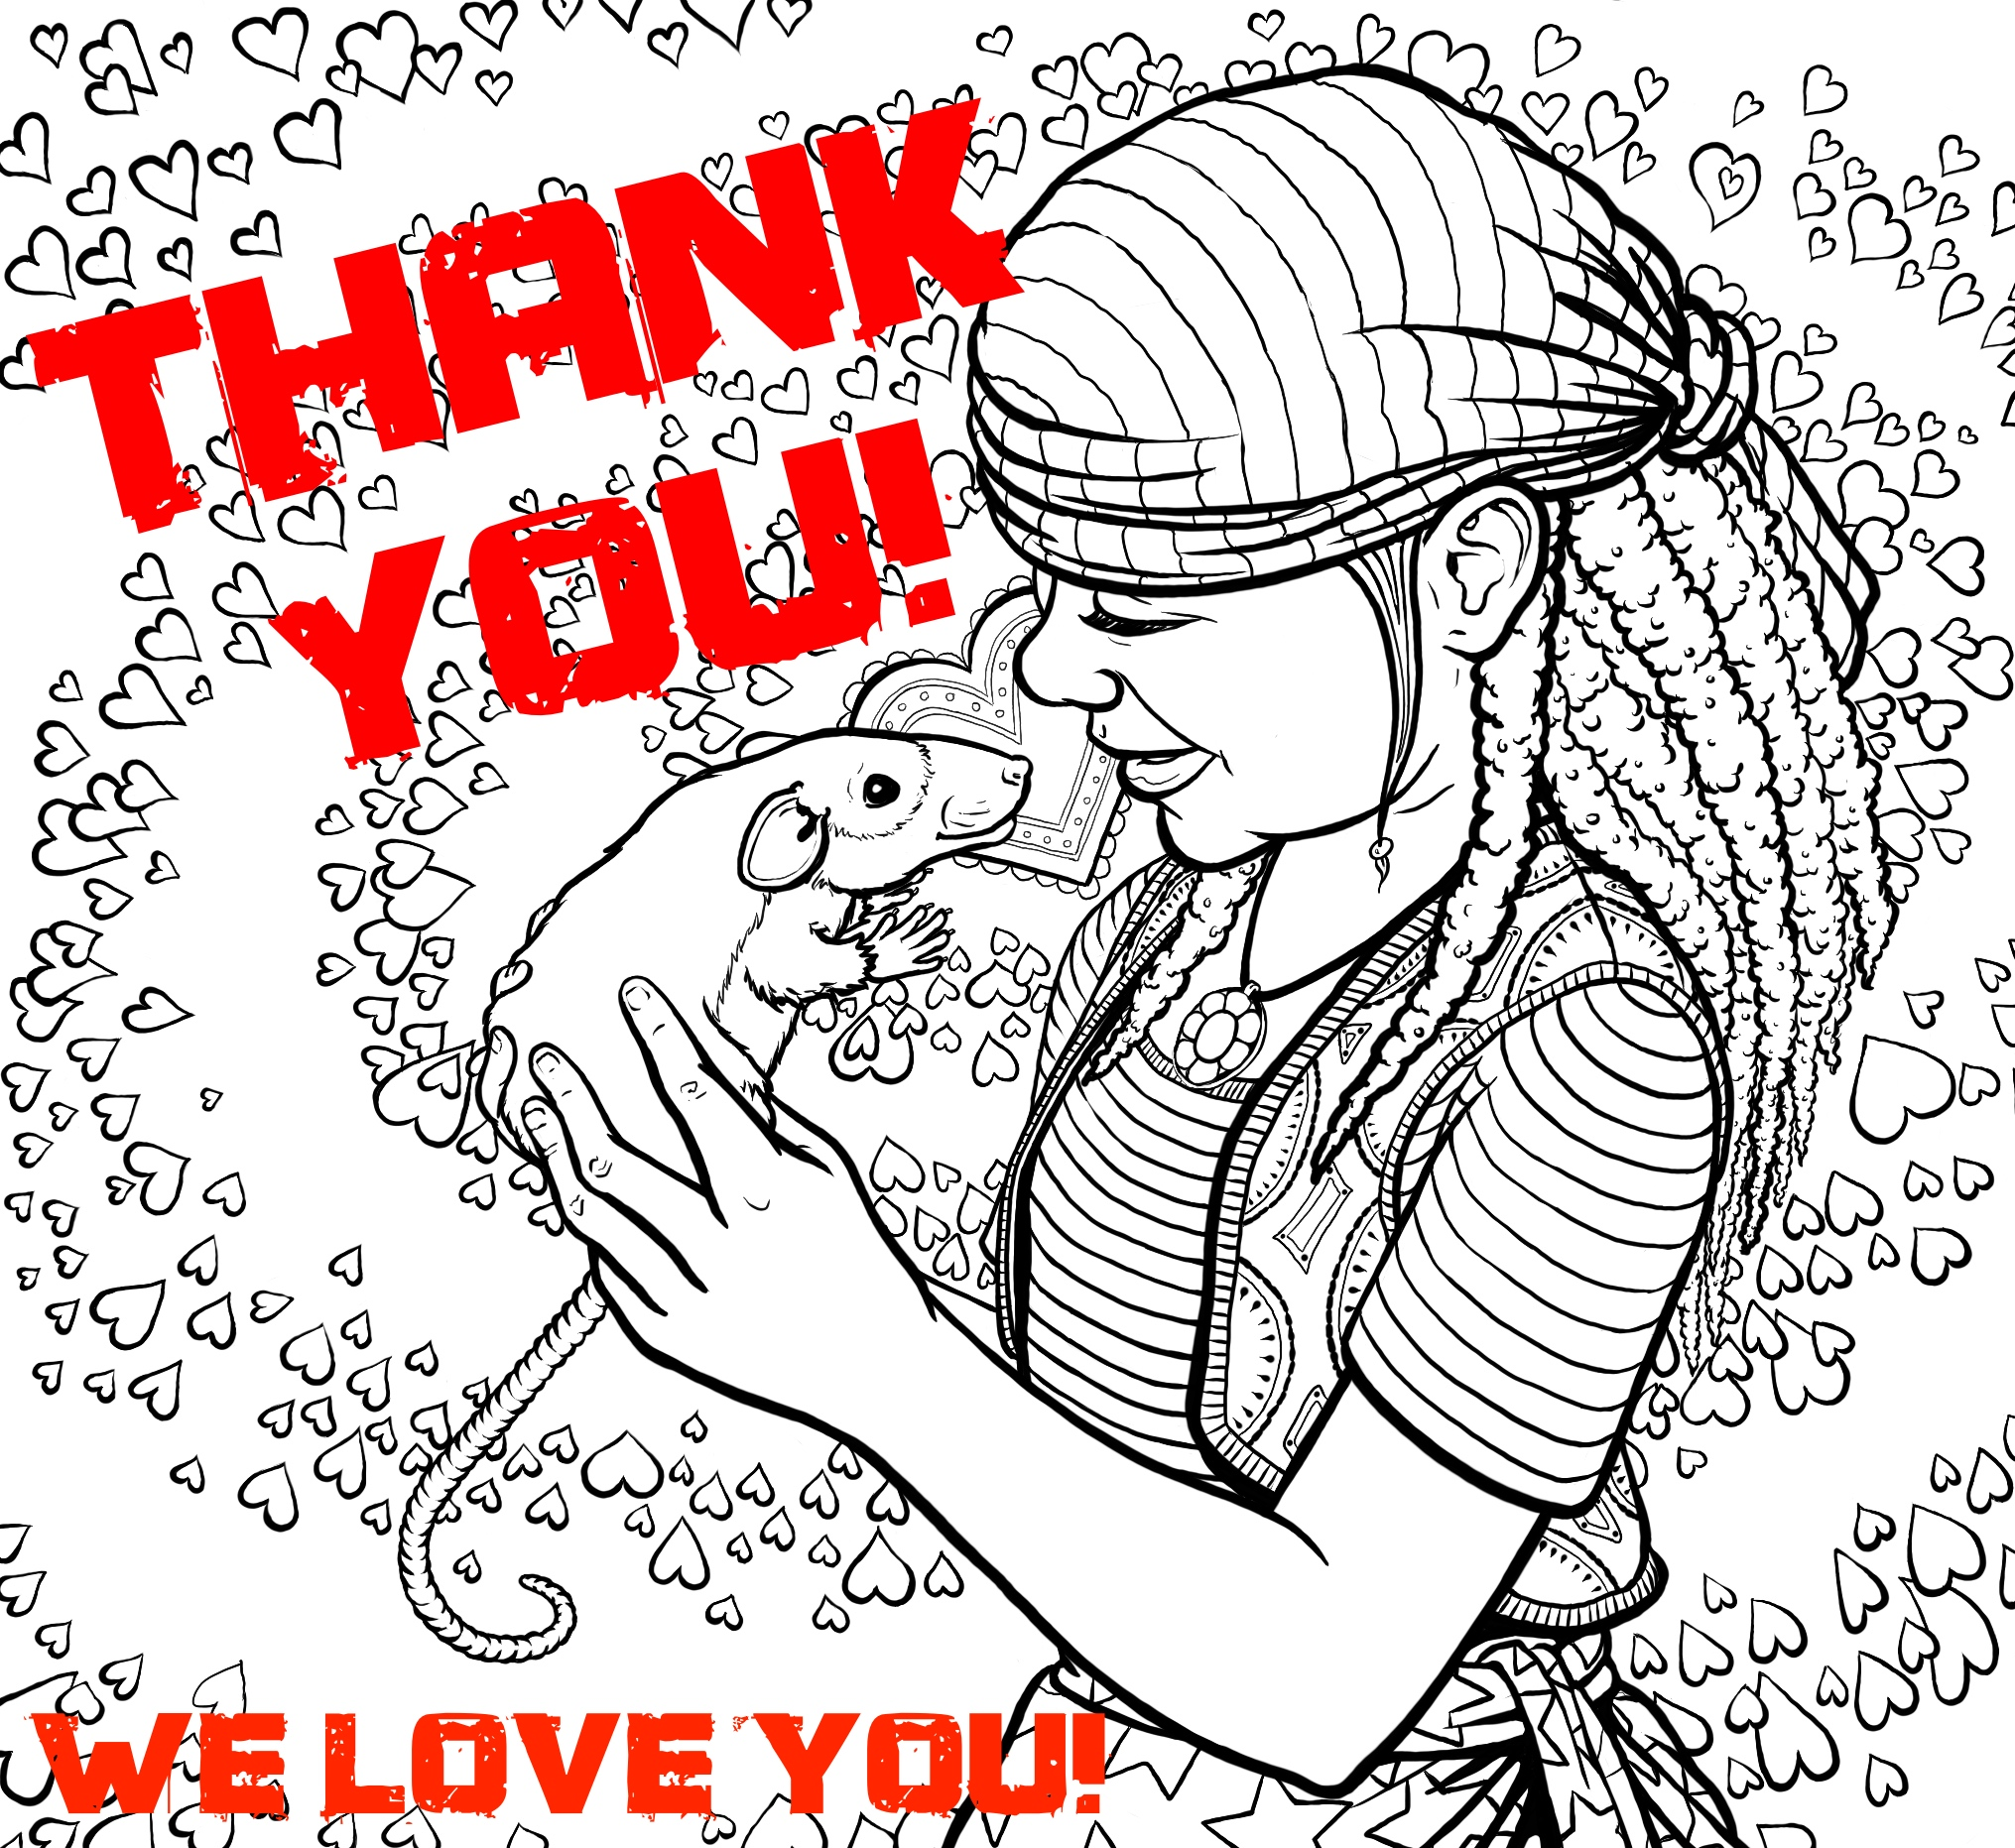 Thank you everyone who supported our project,  That Naughty Pipe ,on Kickstarter!  Rob Boley  and I are meeting tomorrow to discuss the next phase and pick the coloring contest winners!